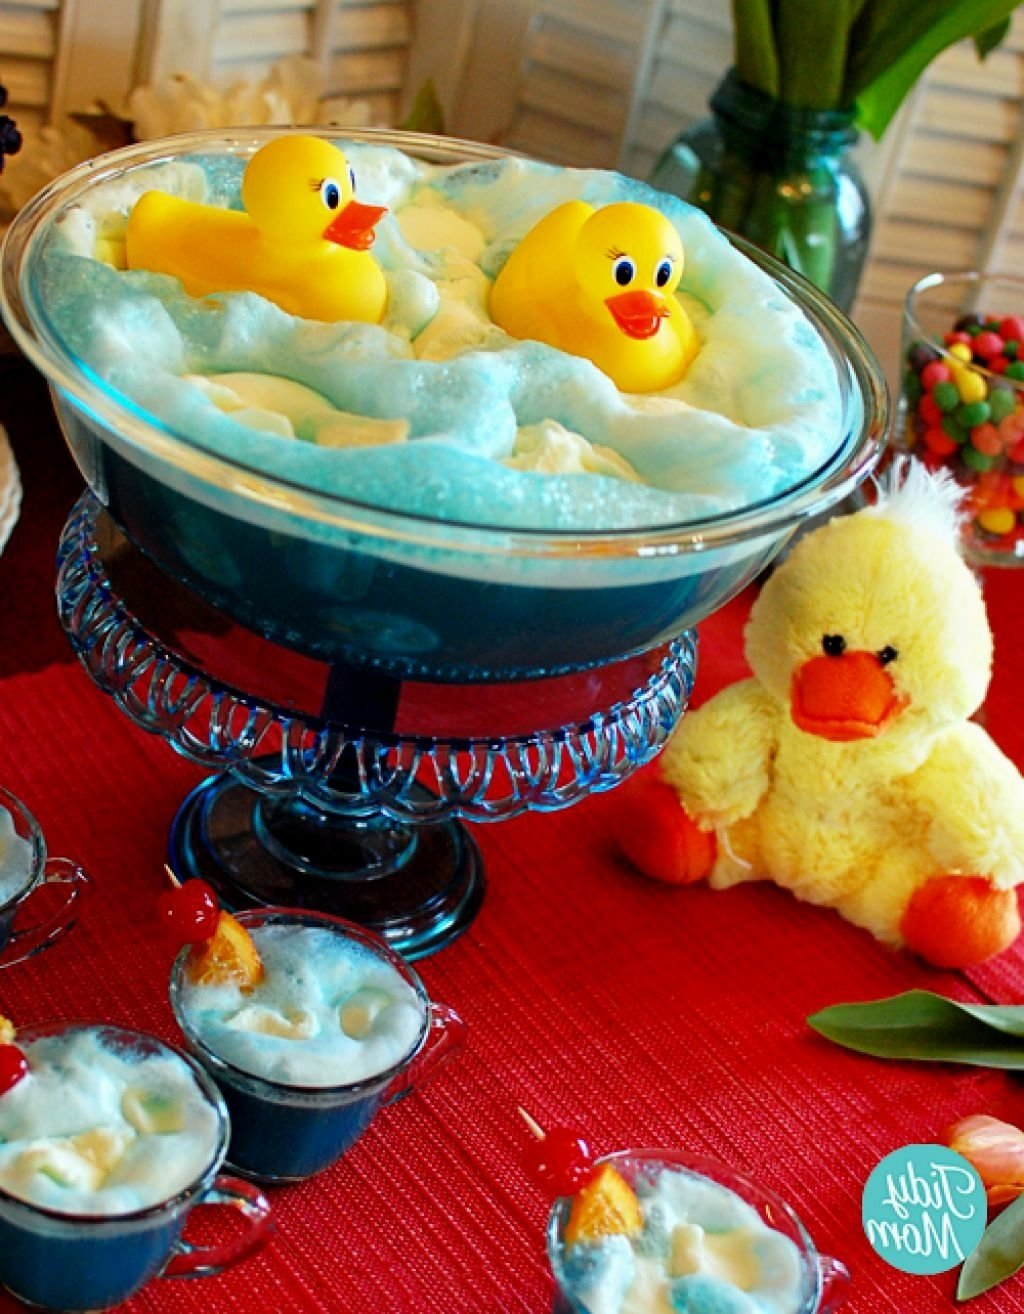 10 Attractive Baby Shower Food Ideas For A Boy boy baby shower food ideas decorating of party 2020